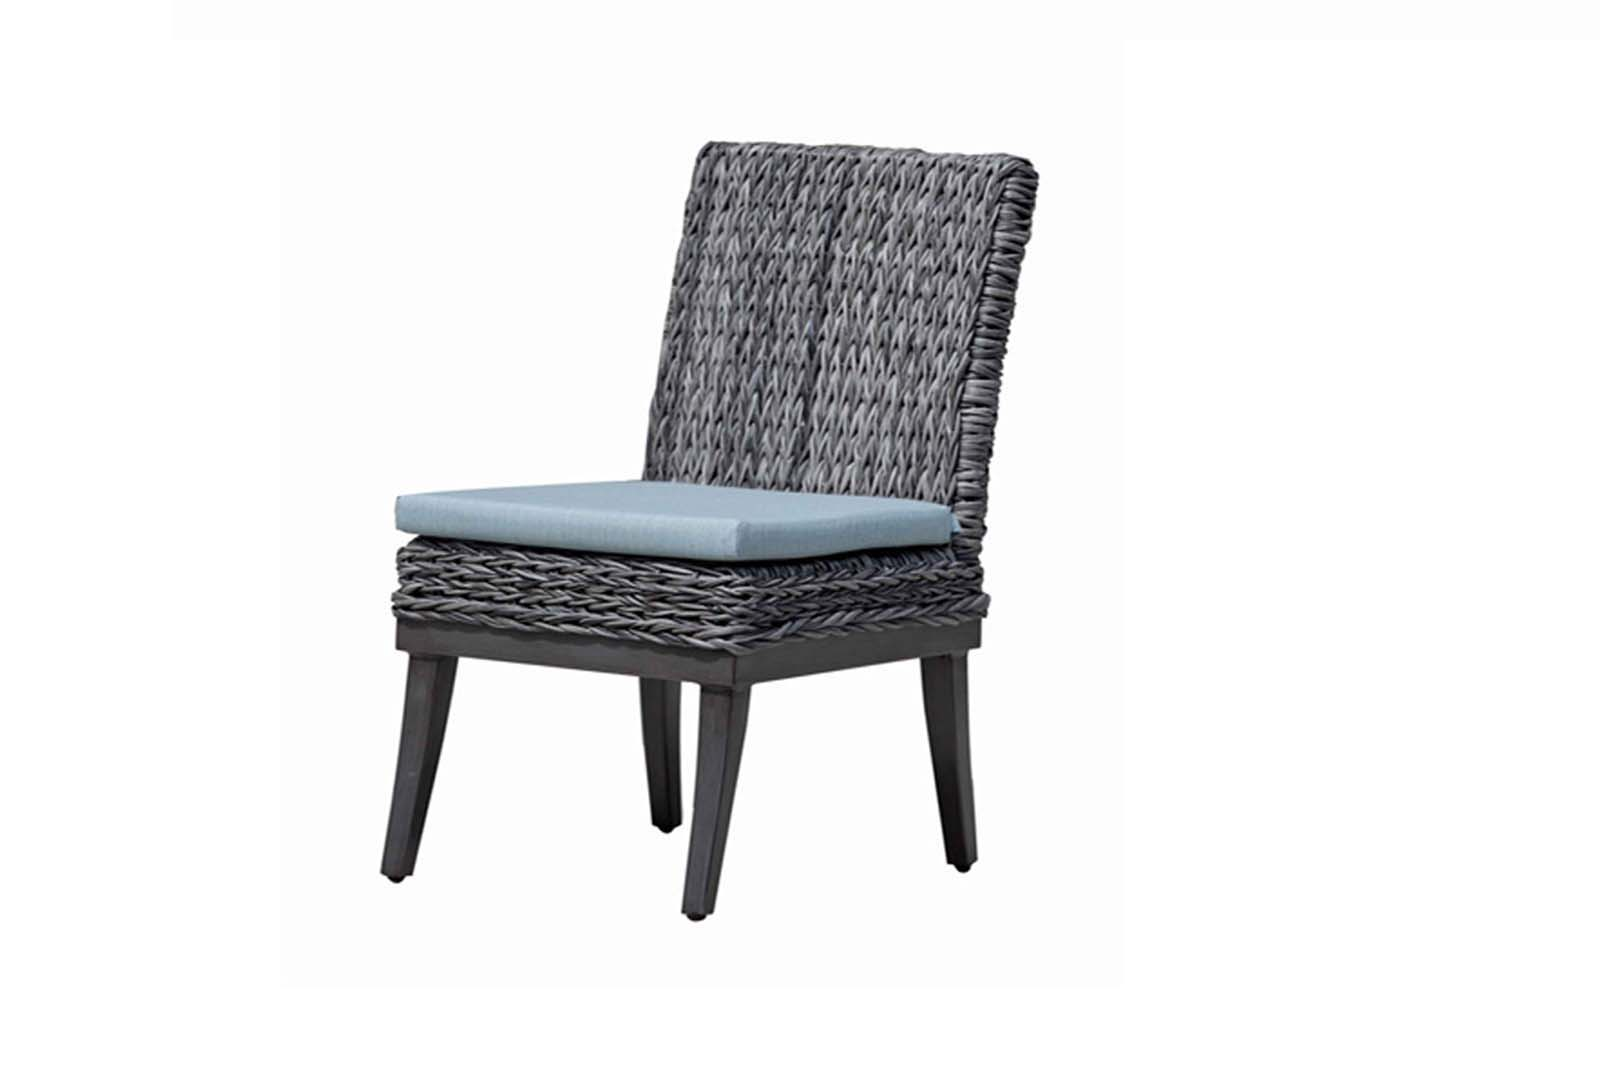 Boston Dining Chair for Website